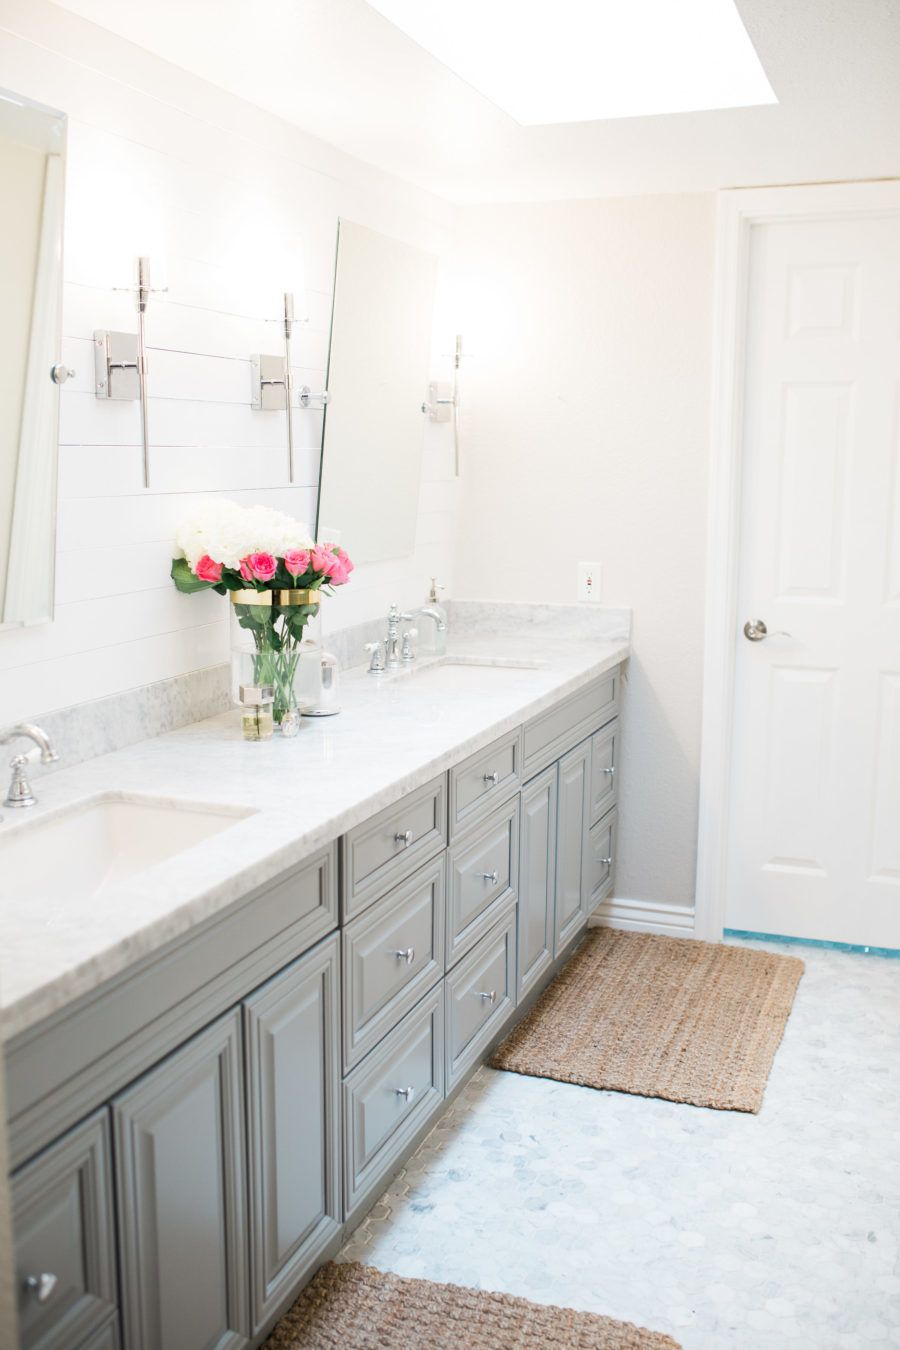 Master Bathroom Remodel Design Before And After On A